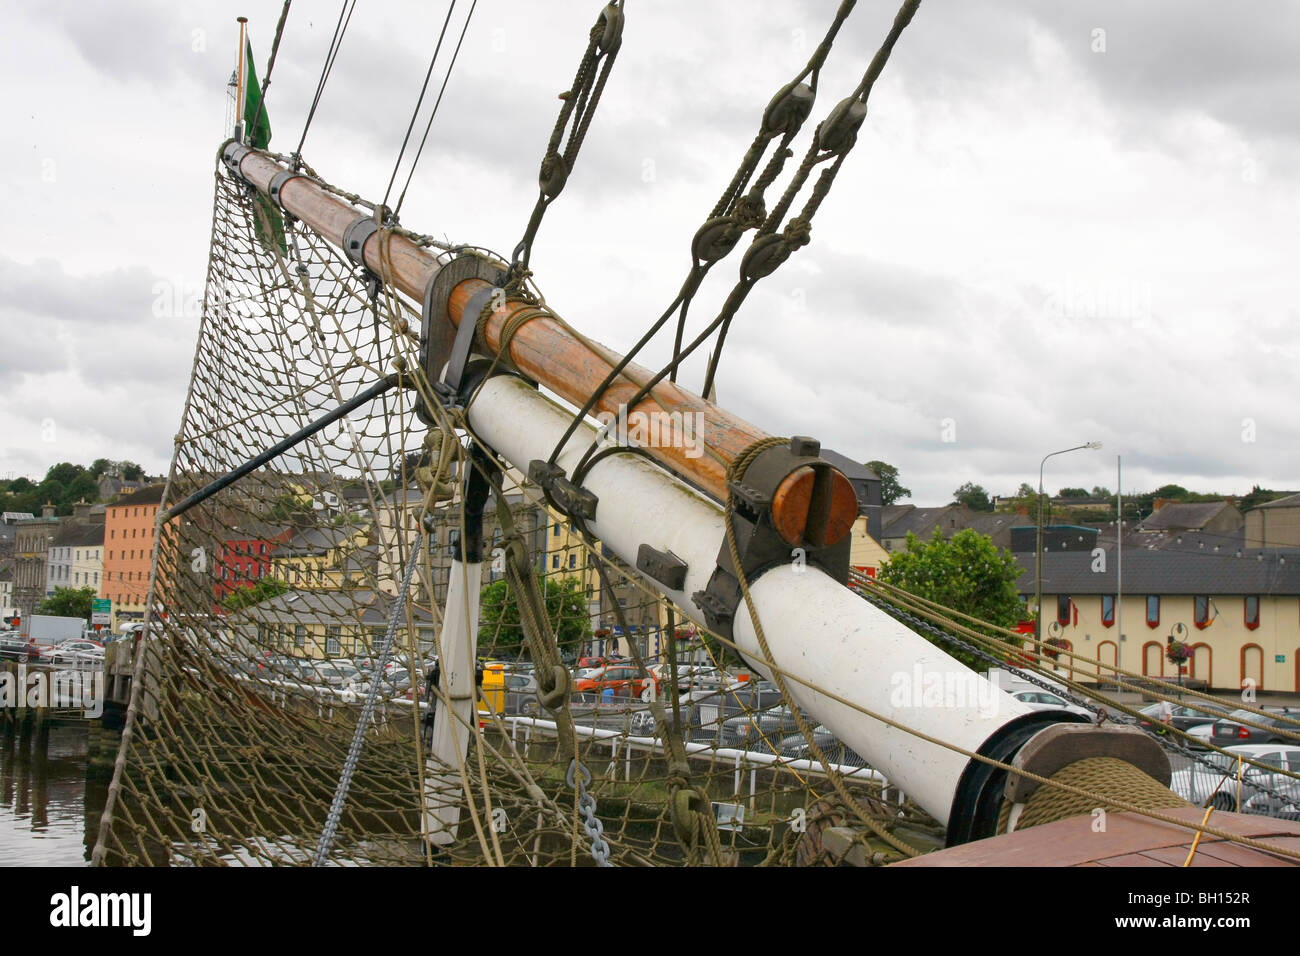 Bowspit of the famine ship Dunbody at New Ross, Eire. - Stock Image